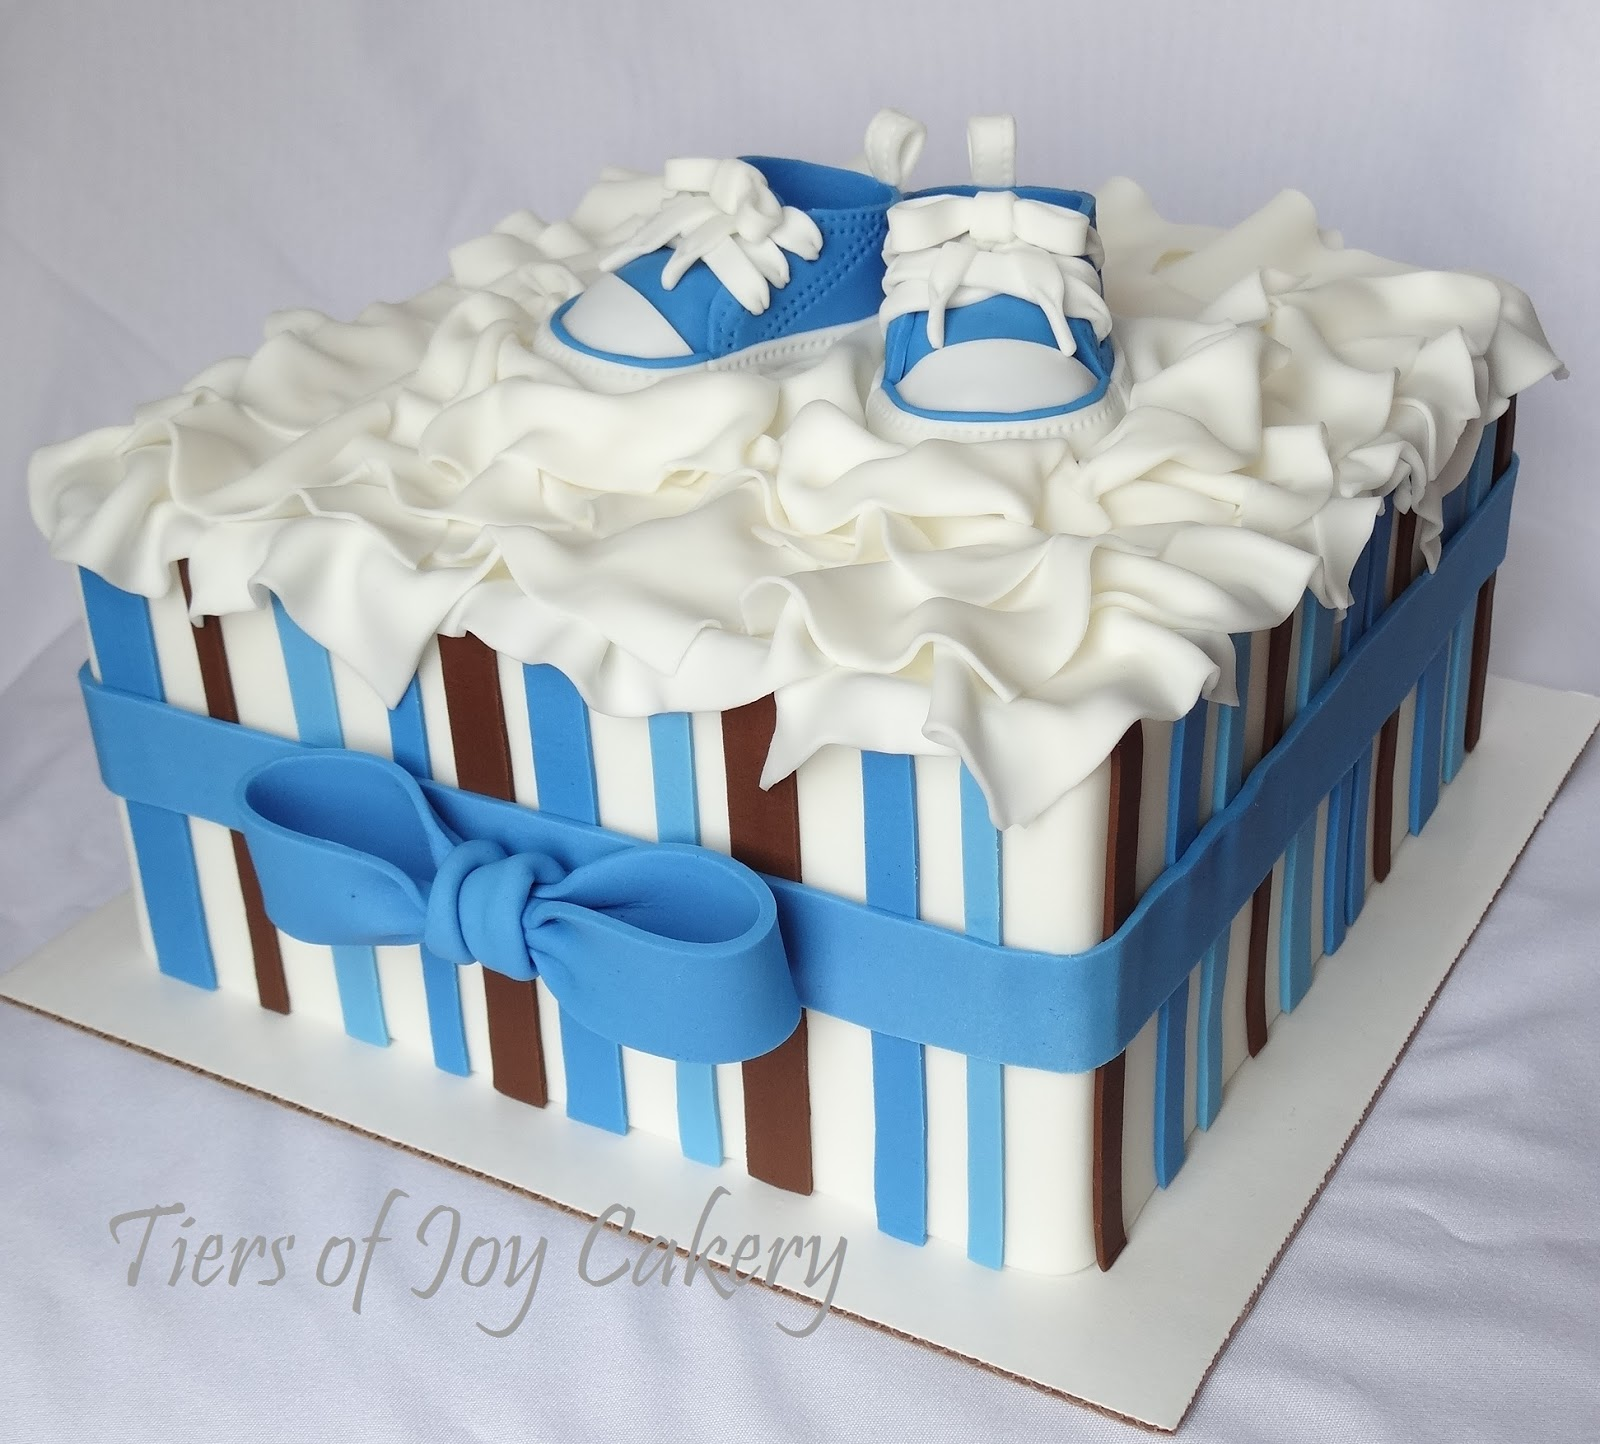 Cake Decorations Baby Shoes : Tiers of Joy Cakery: Gift Box with Converse Baby Shoes